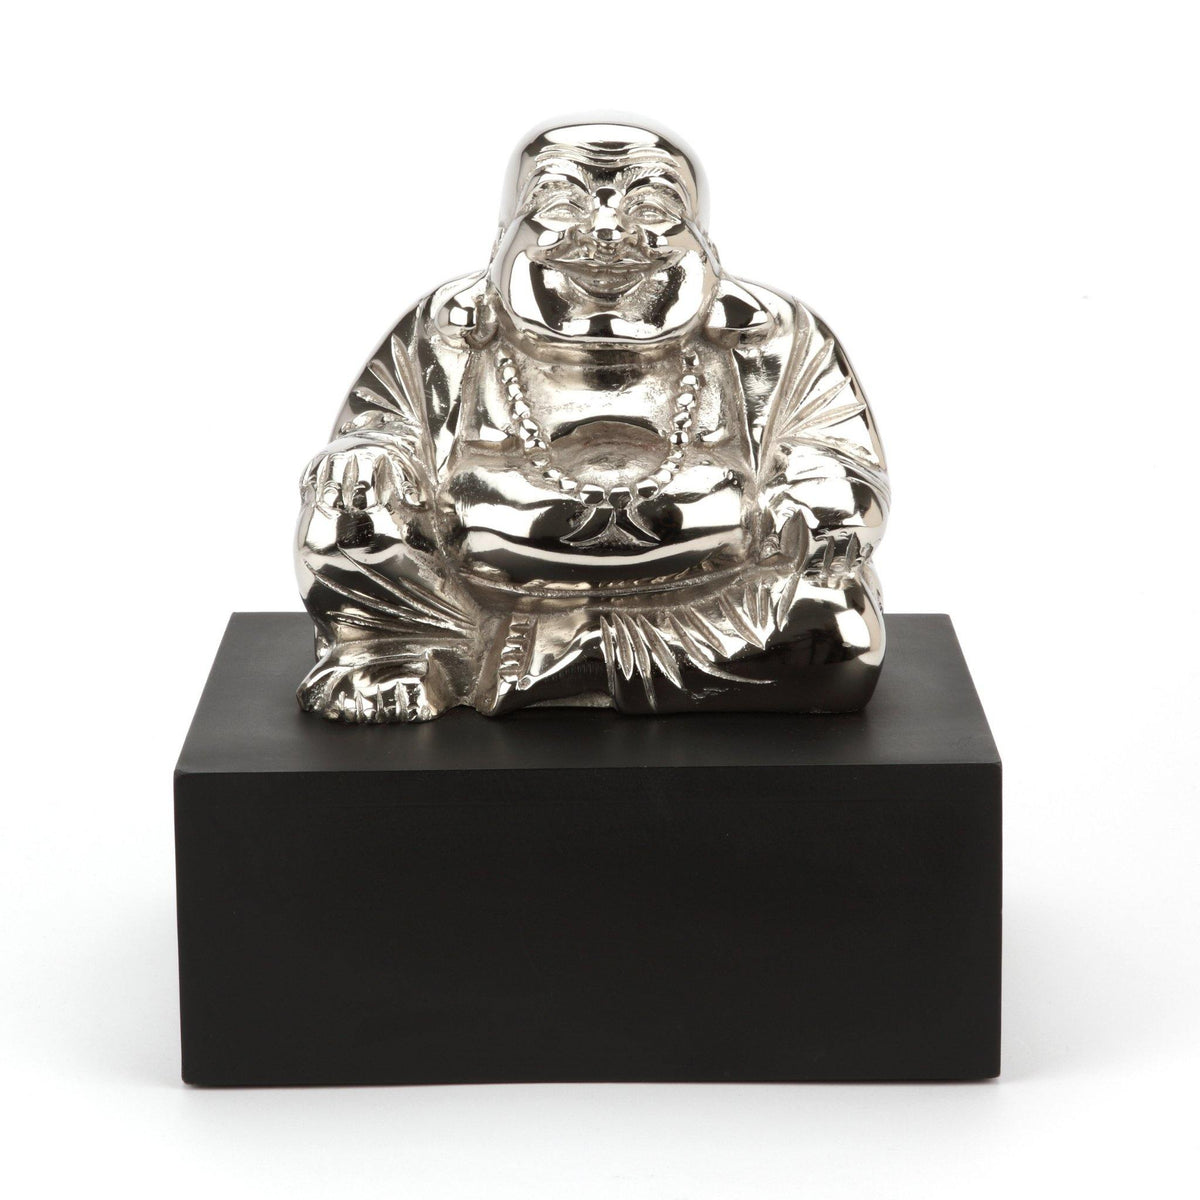 Laughing Buddha Art Cremation Ashes Urn - Urns UK